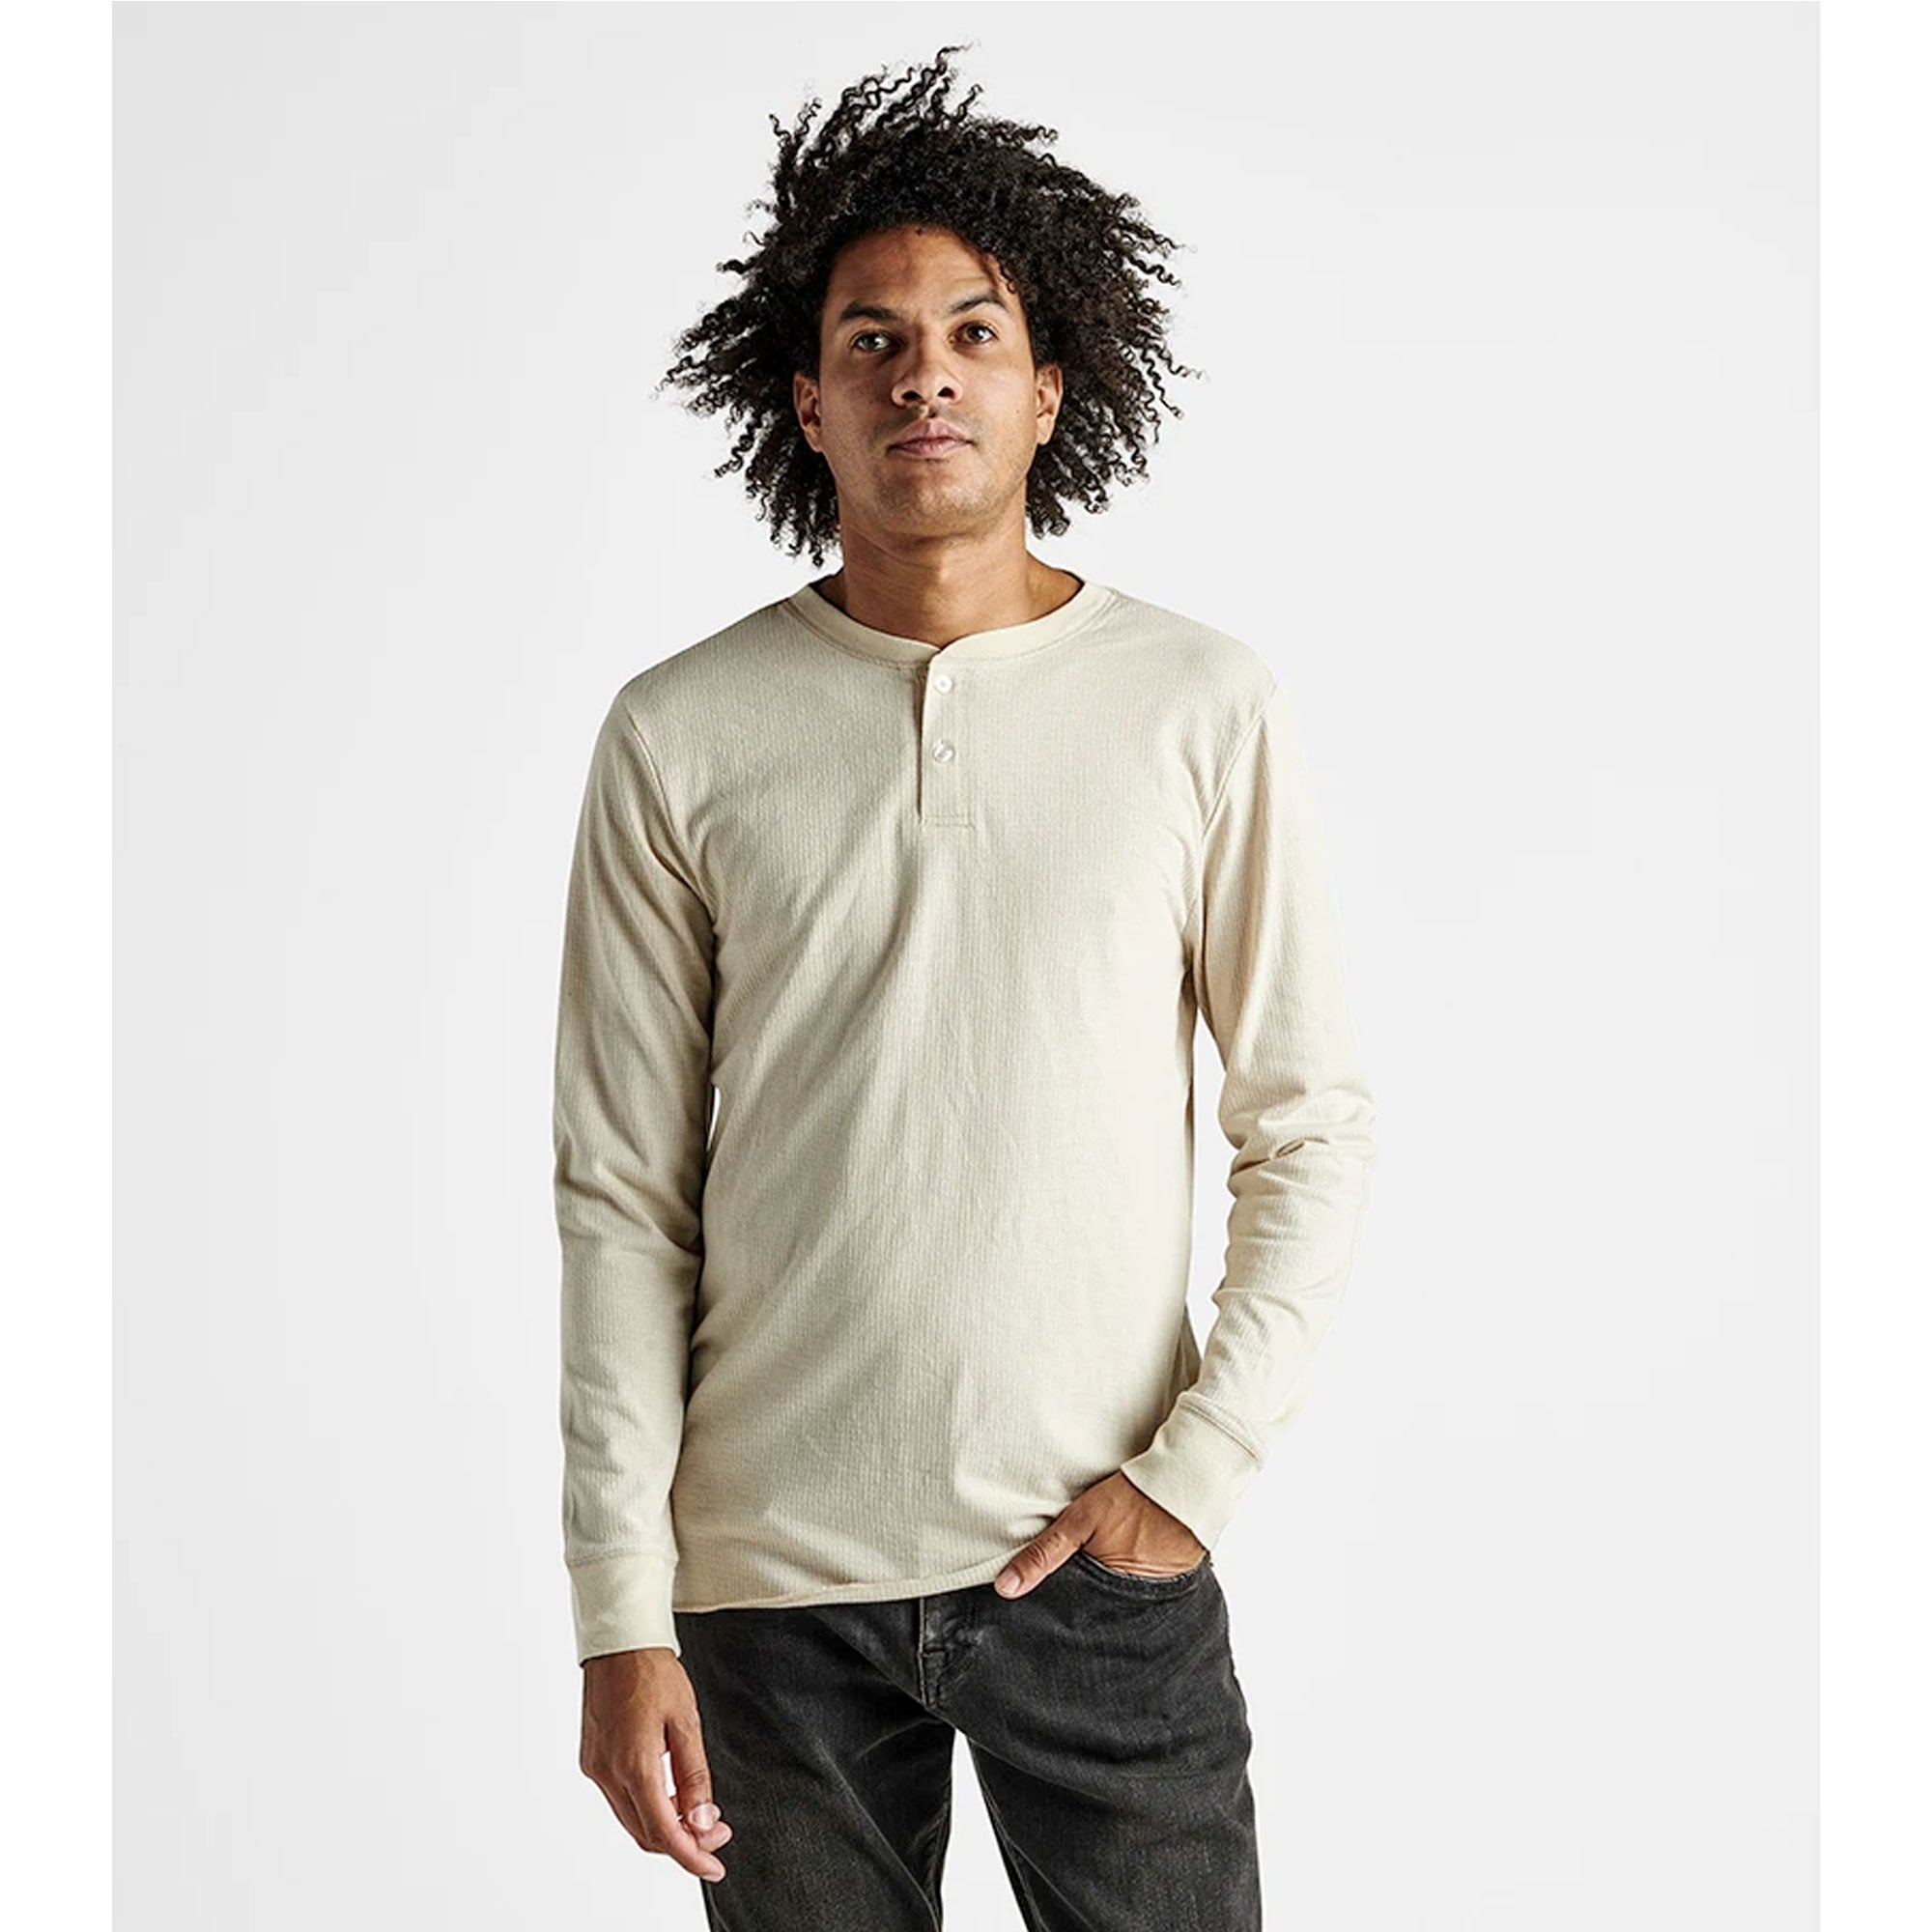 Roark Rat Saloon Men's L/S Knit Shirt